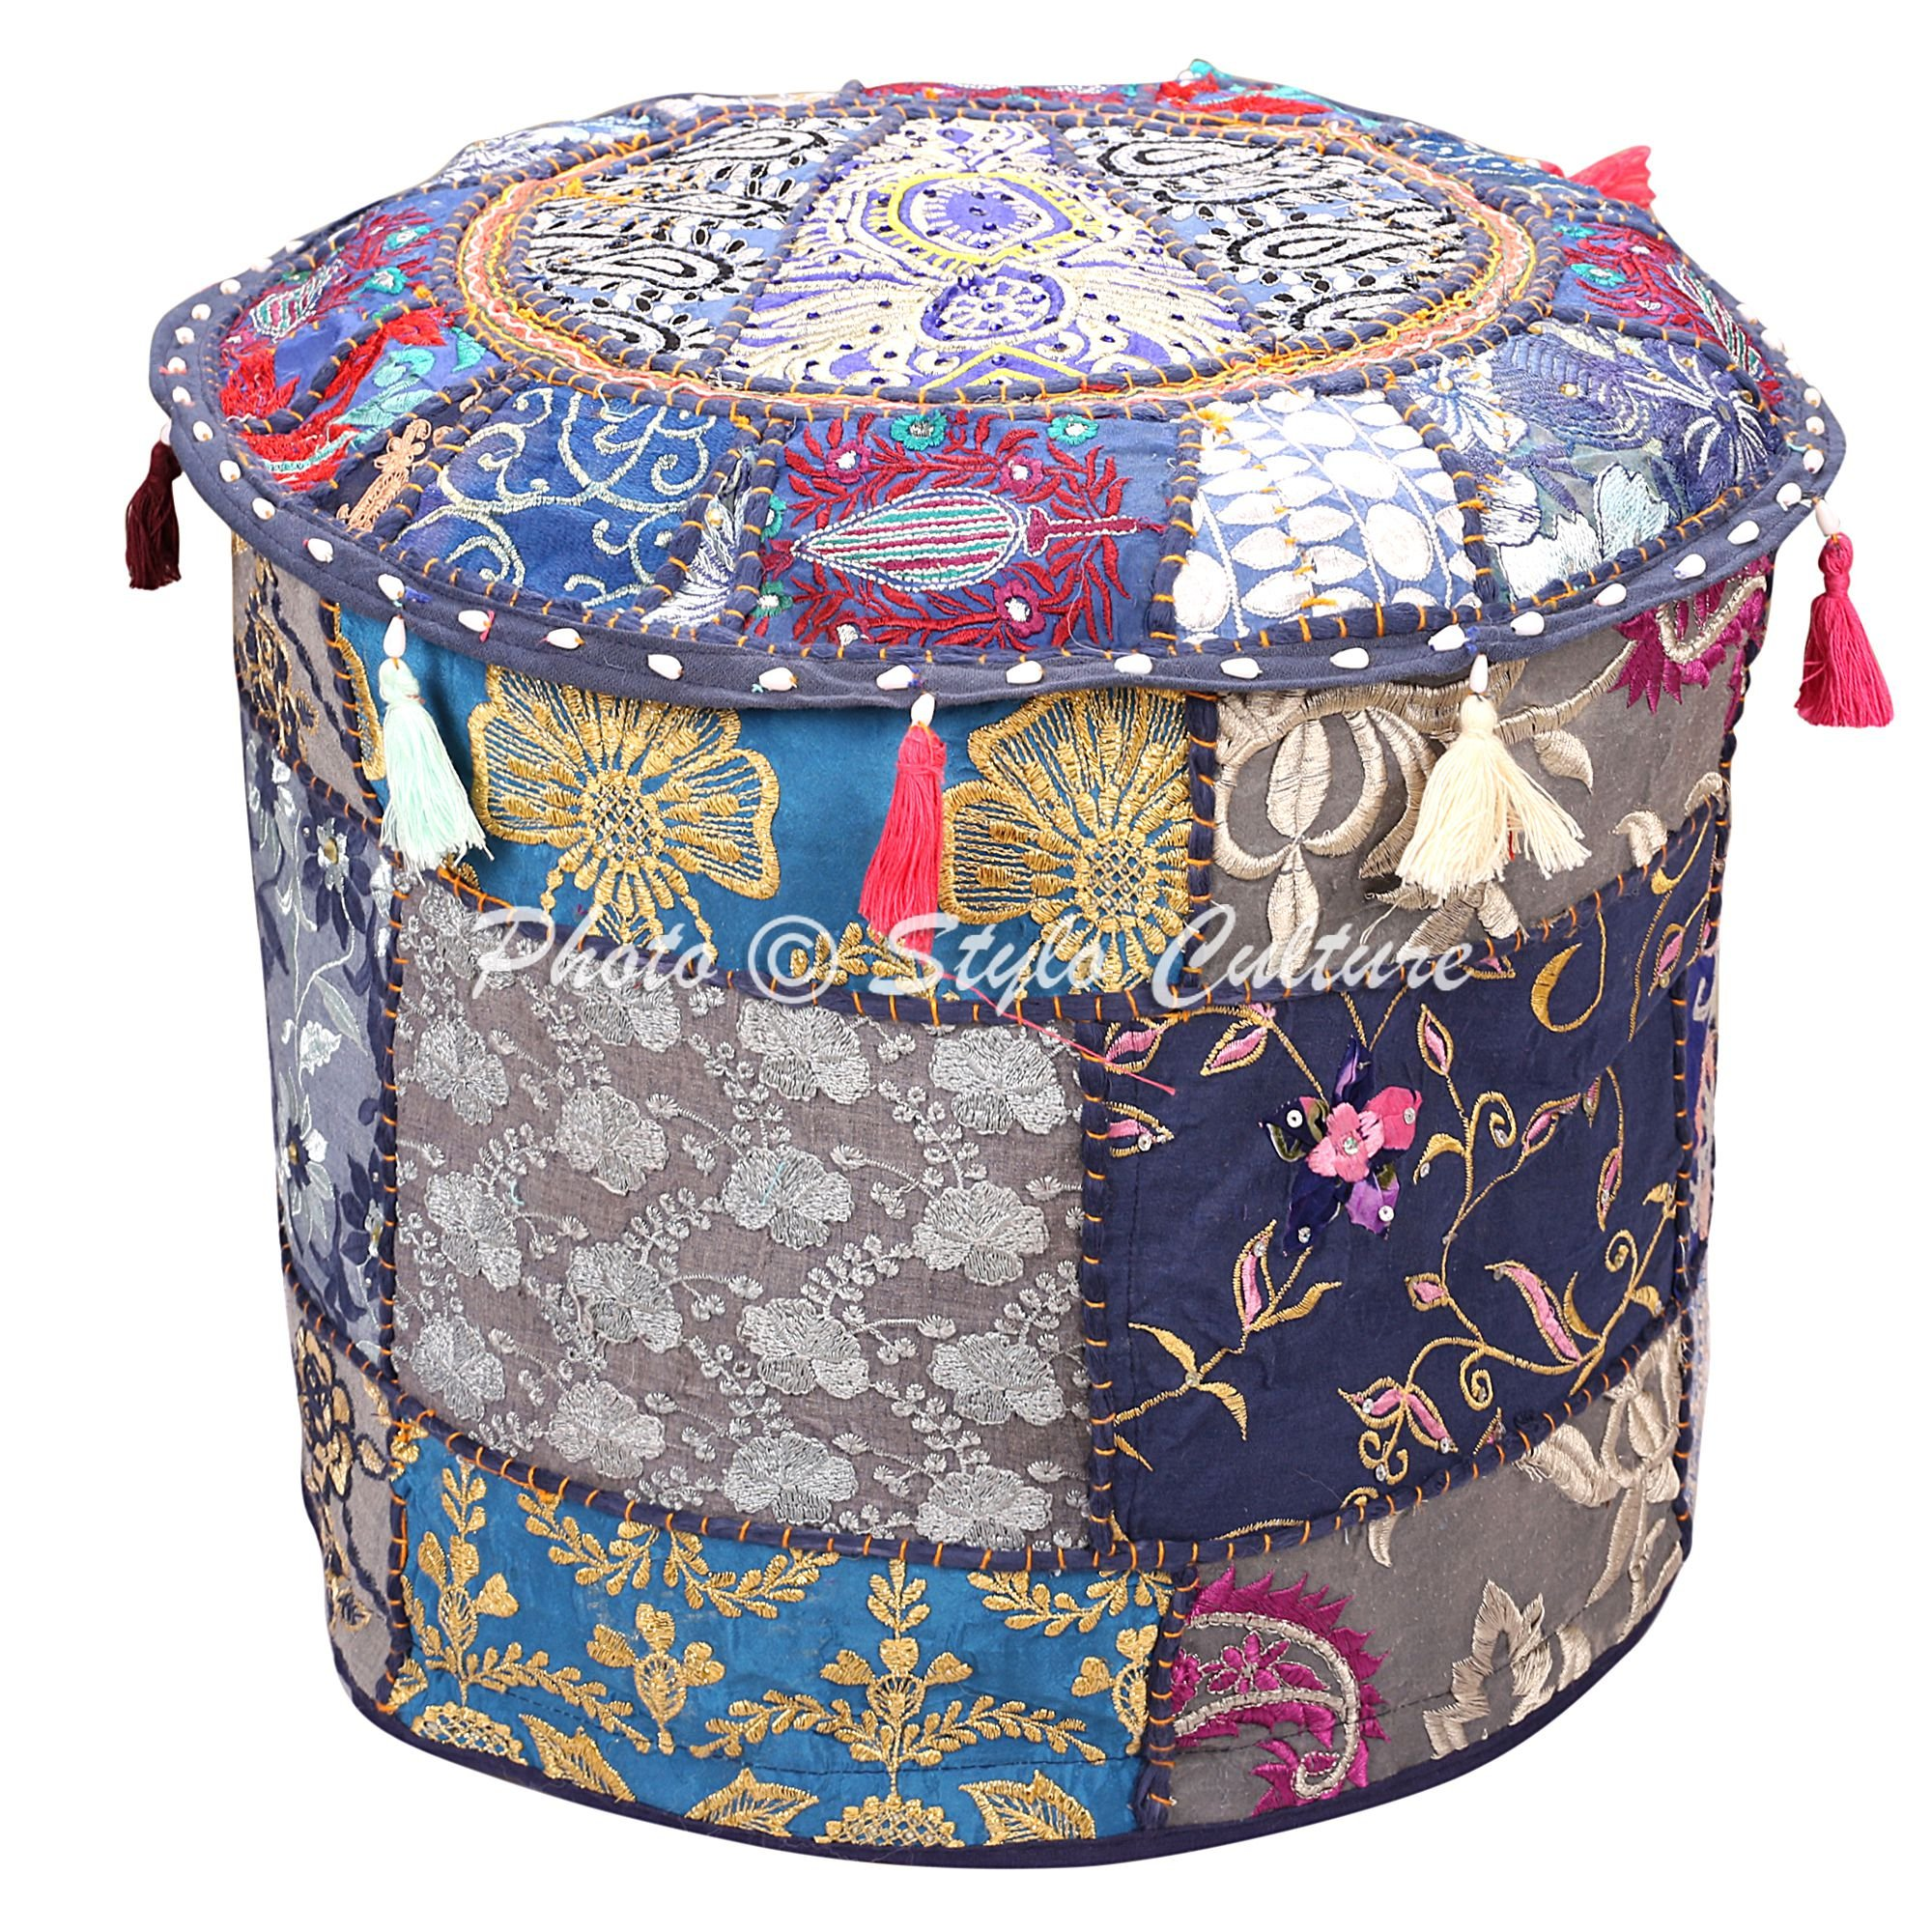 Stylo Culture Ethnic Ottoman Cover Round Indian Patchwork Embroidered Pouffe Ottoman Cover Blue Cotton Floral Traditional Furniture Footstool Seat Puff Cover (18x18x13) by Stylo Culture